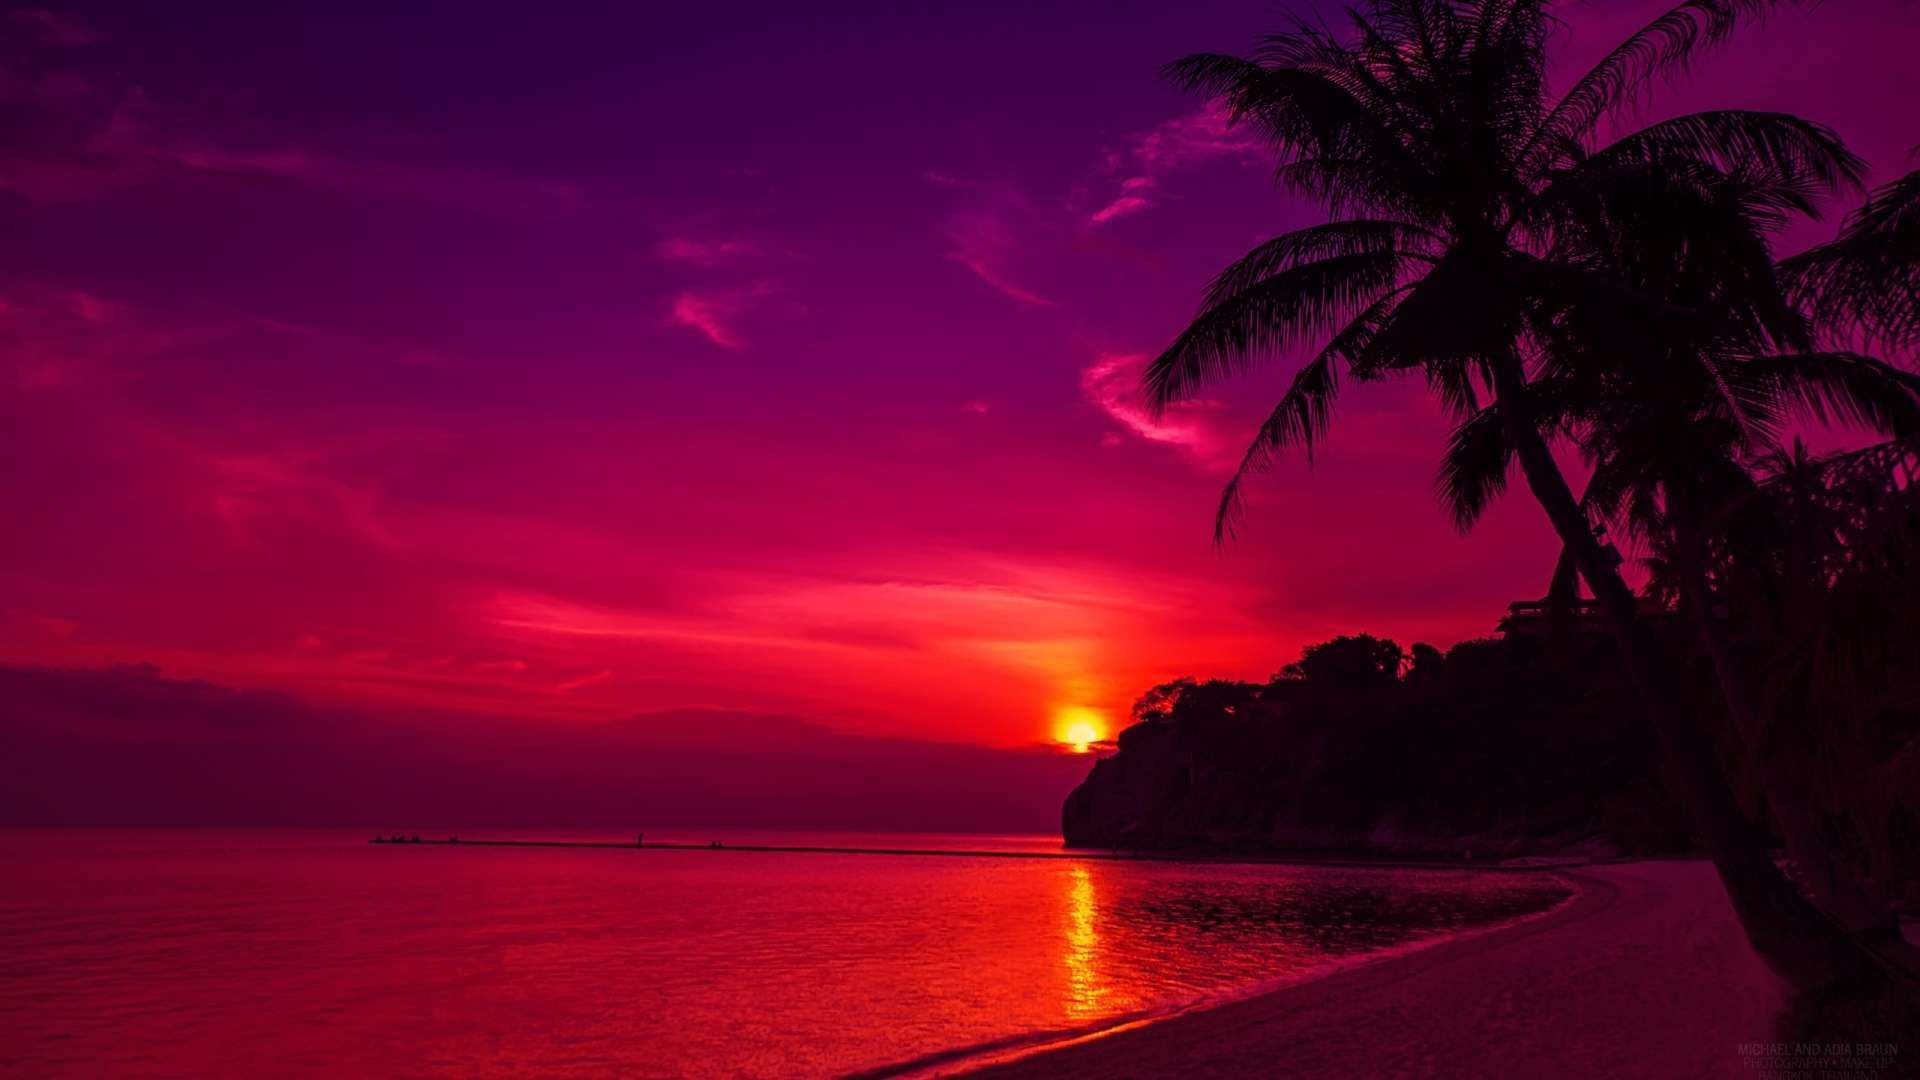 Sunset Beaches Wallpapers Wallpapers 1920x1080